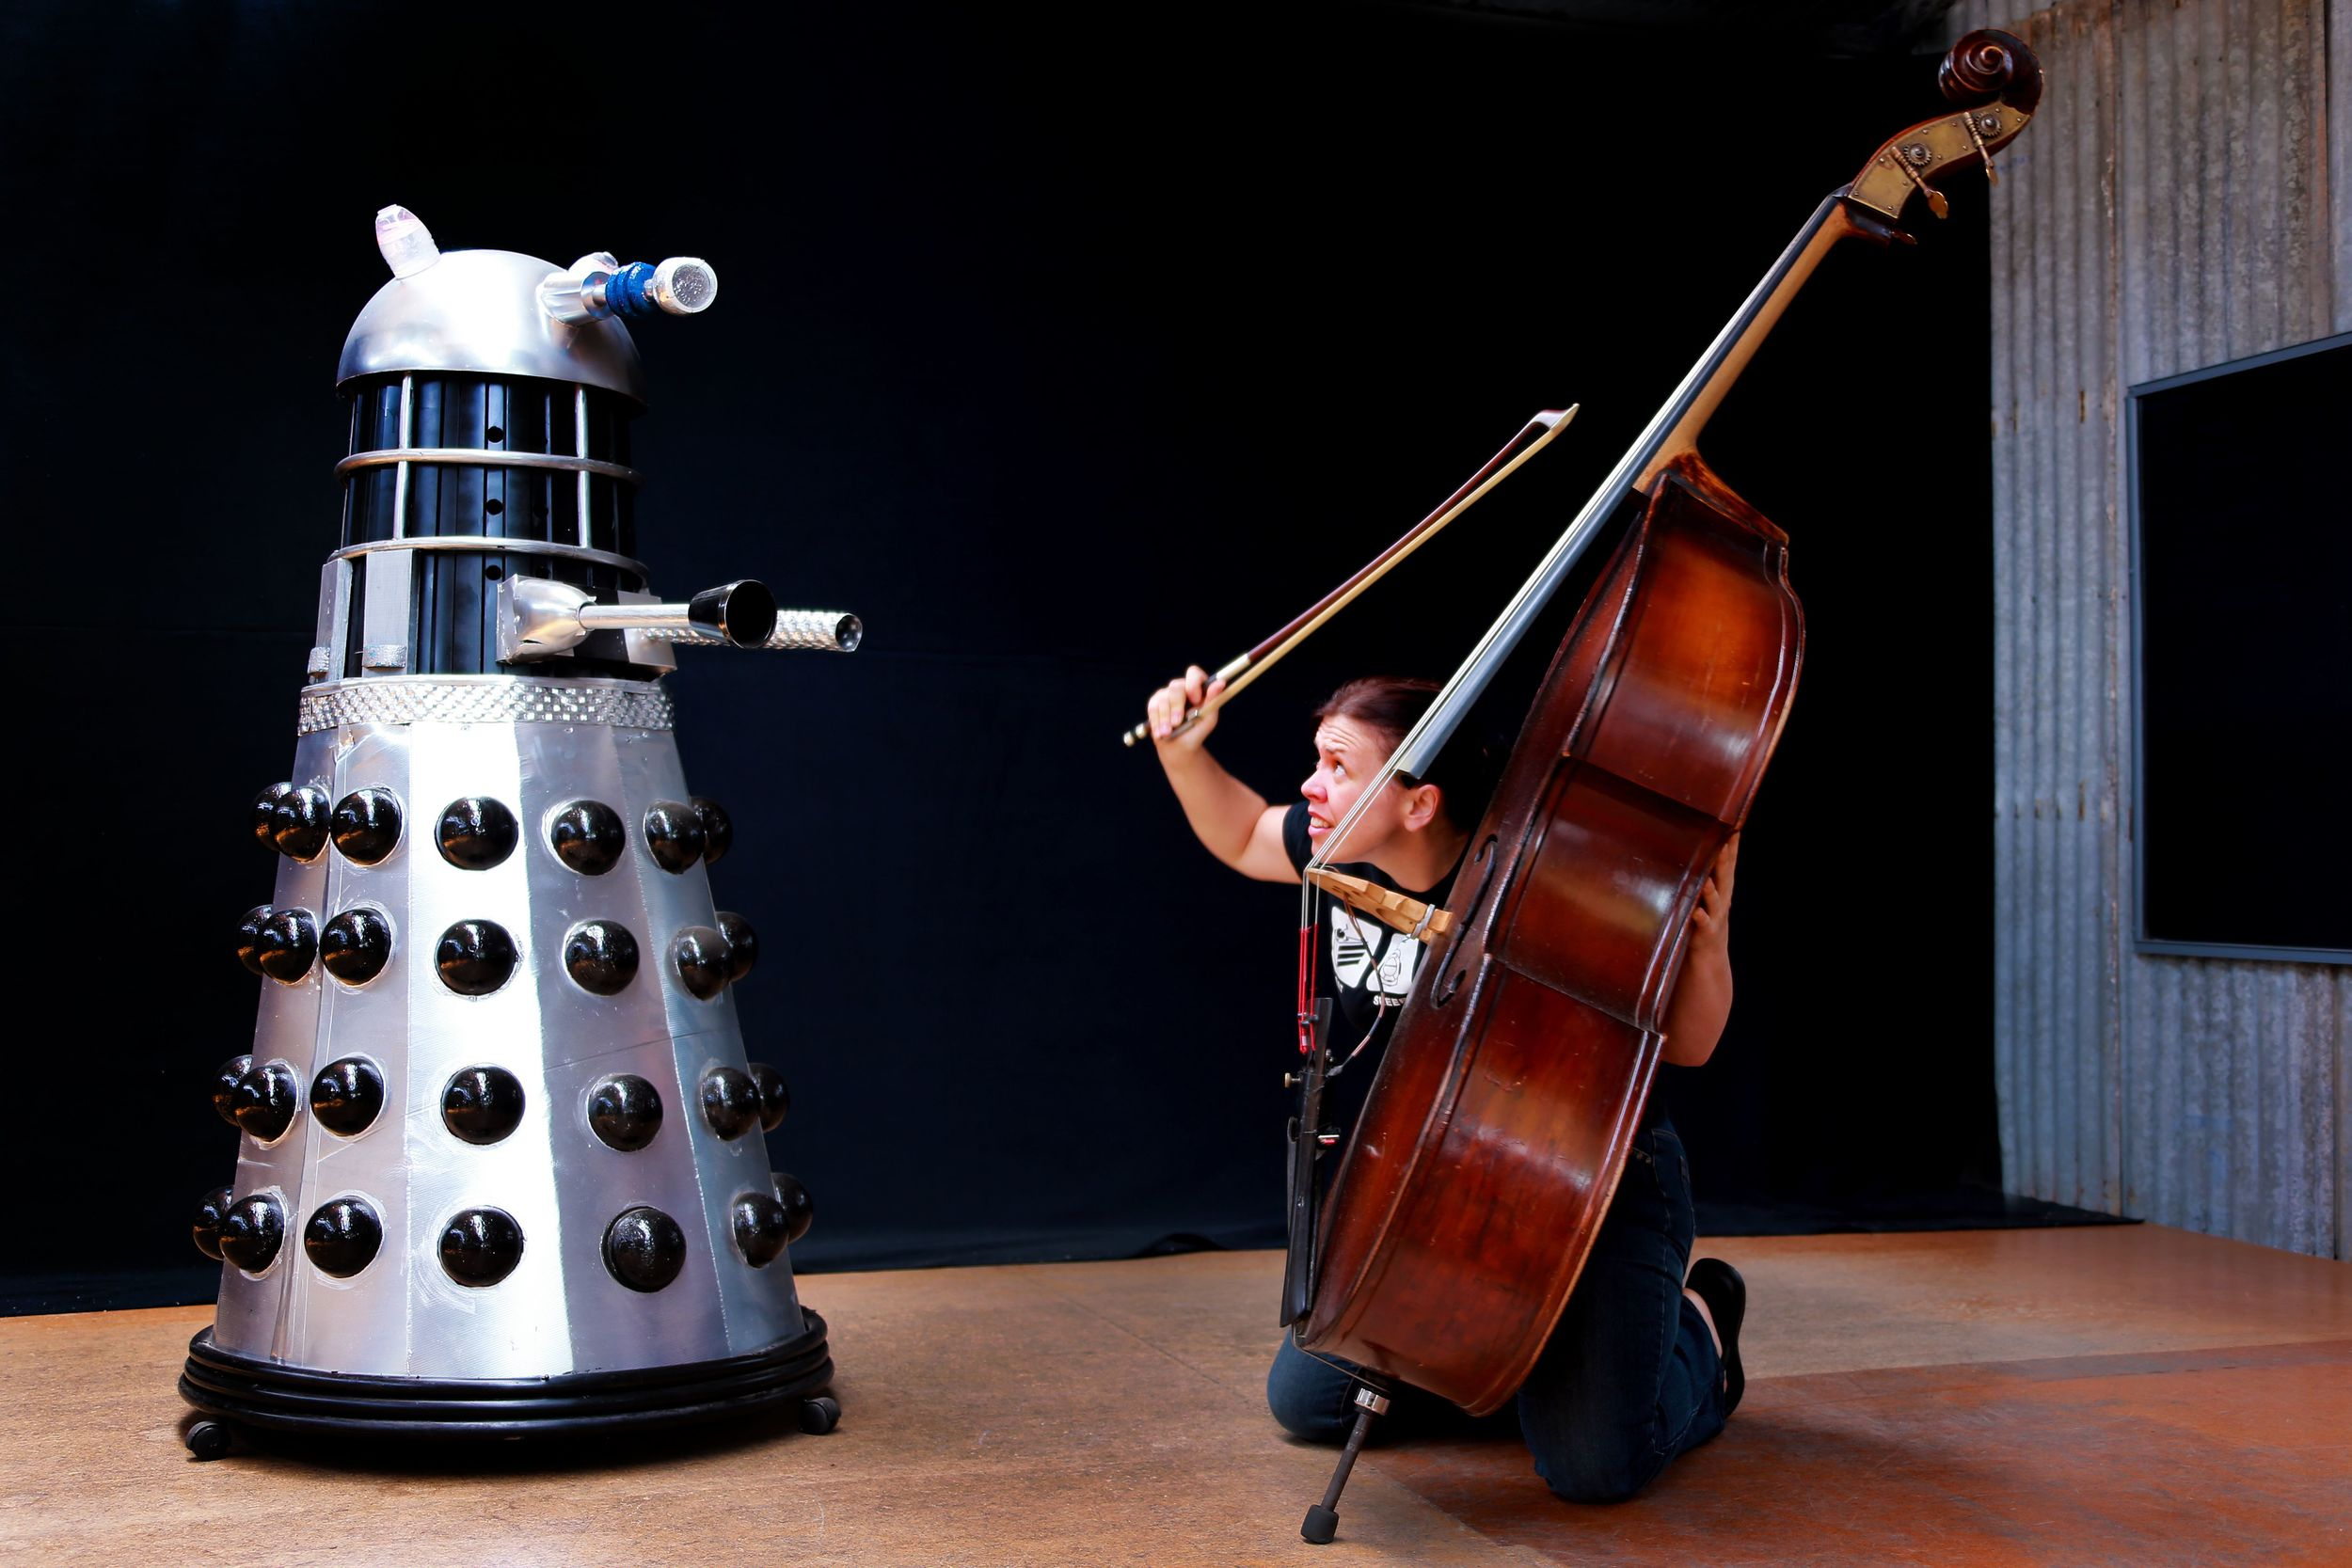 My sister and brother-in-law have a pet Dalek- go figure!